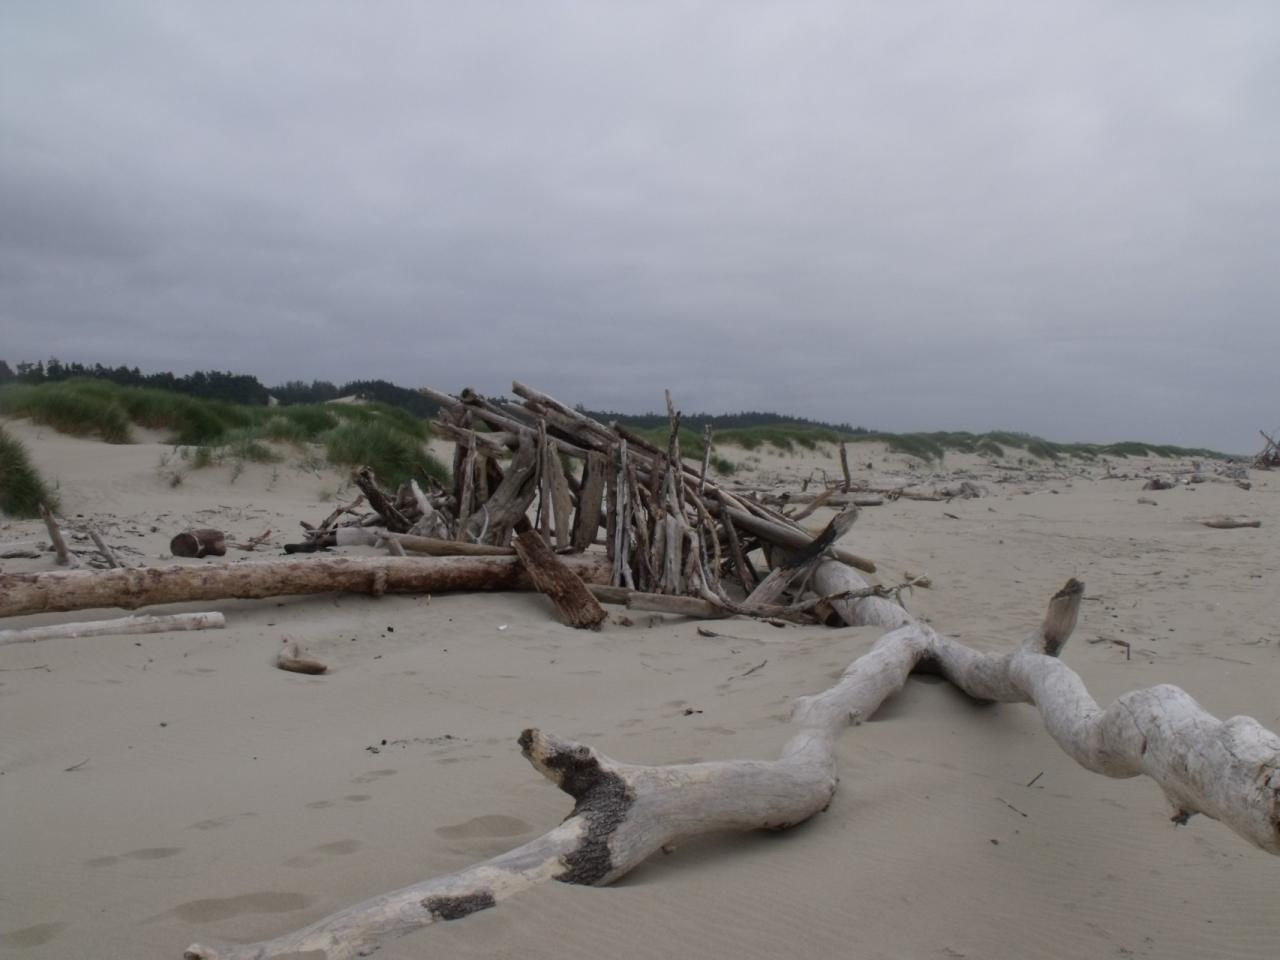 Someone built a unique fort-like structure out of beautiful driftwood on the beach.